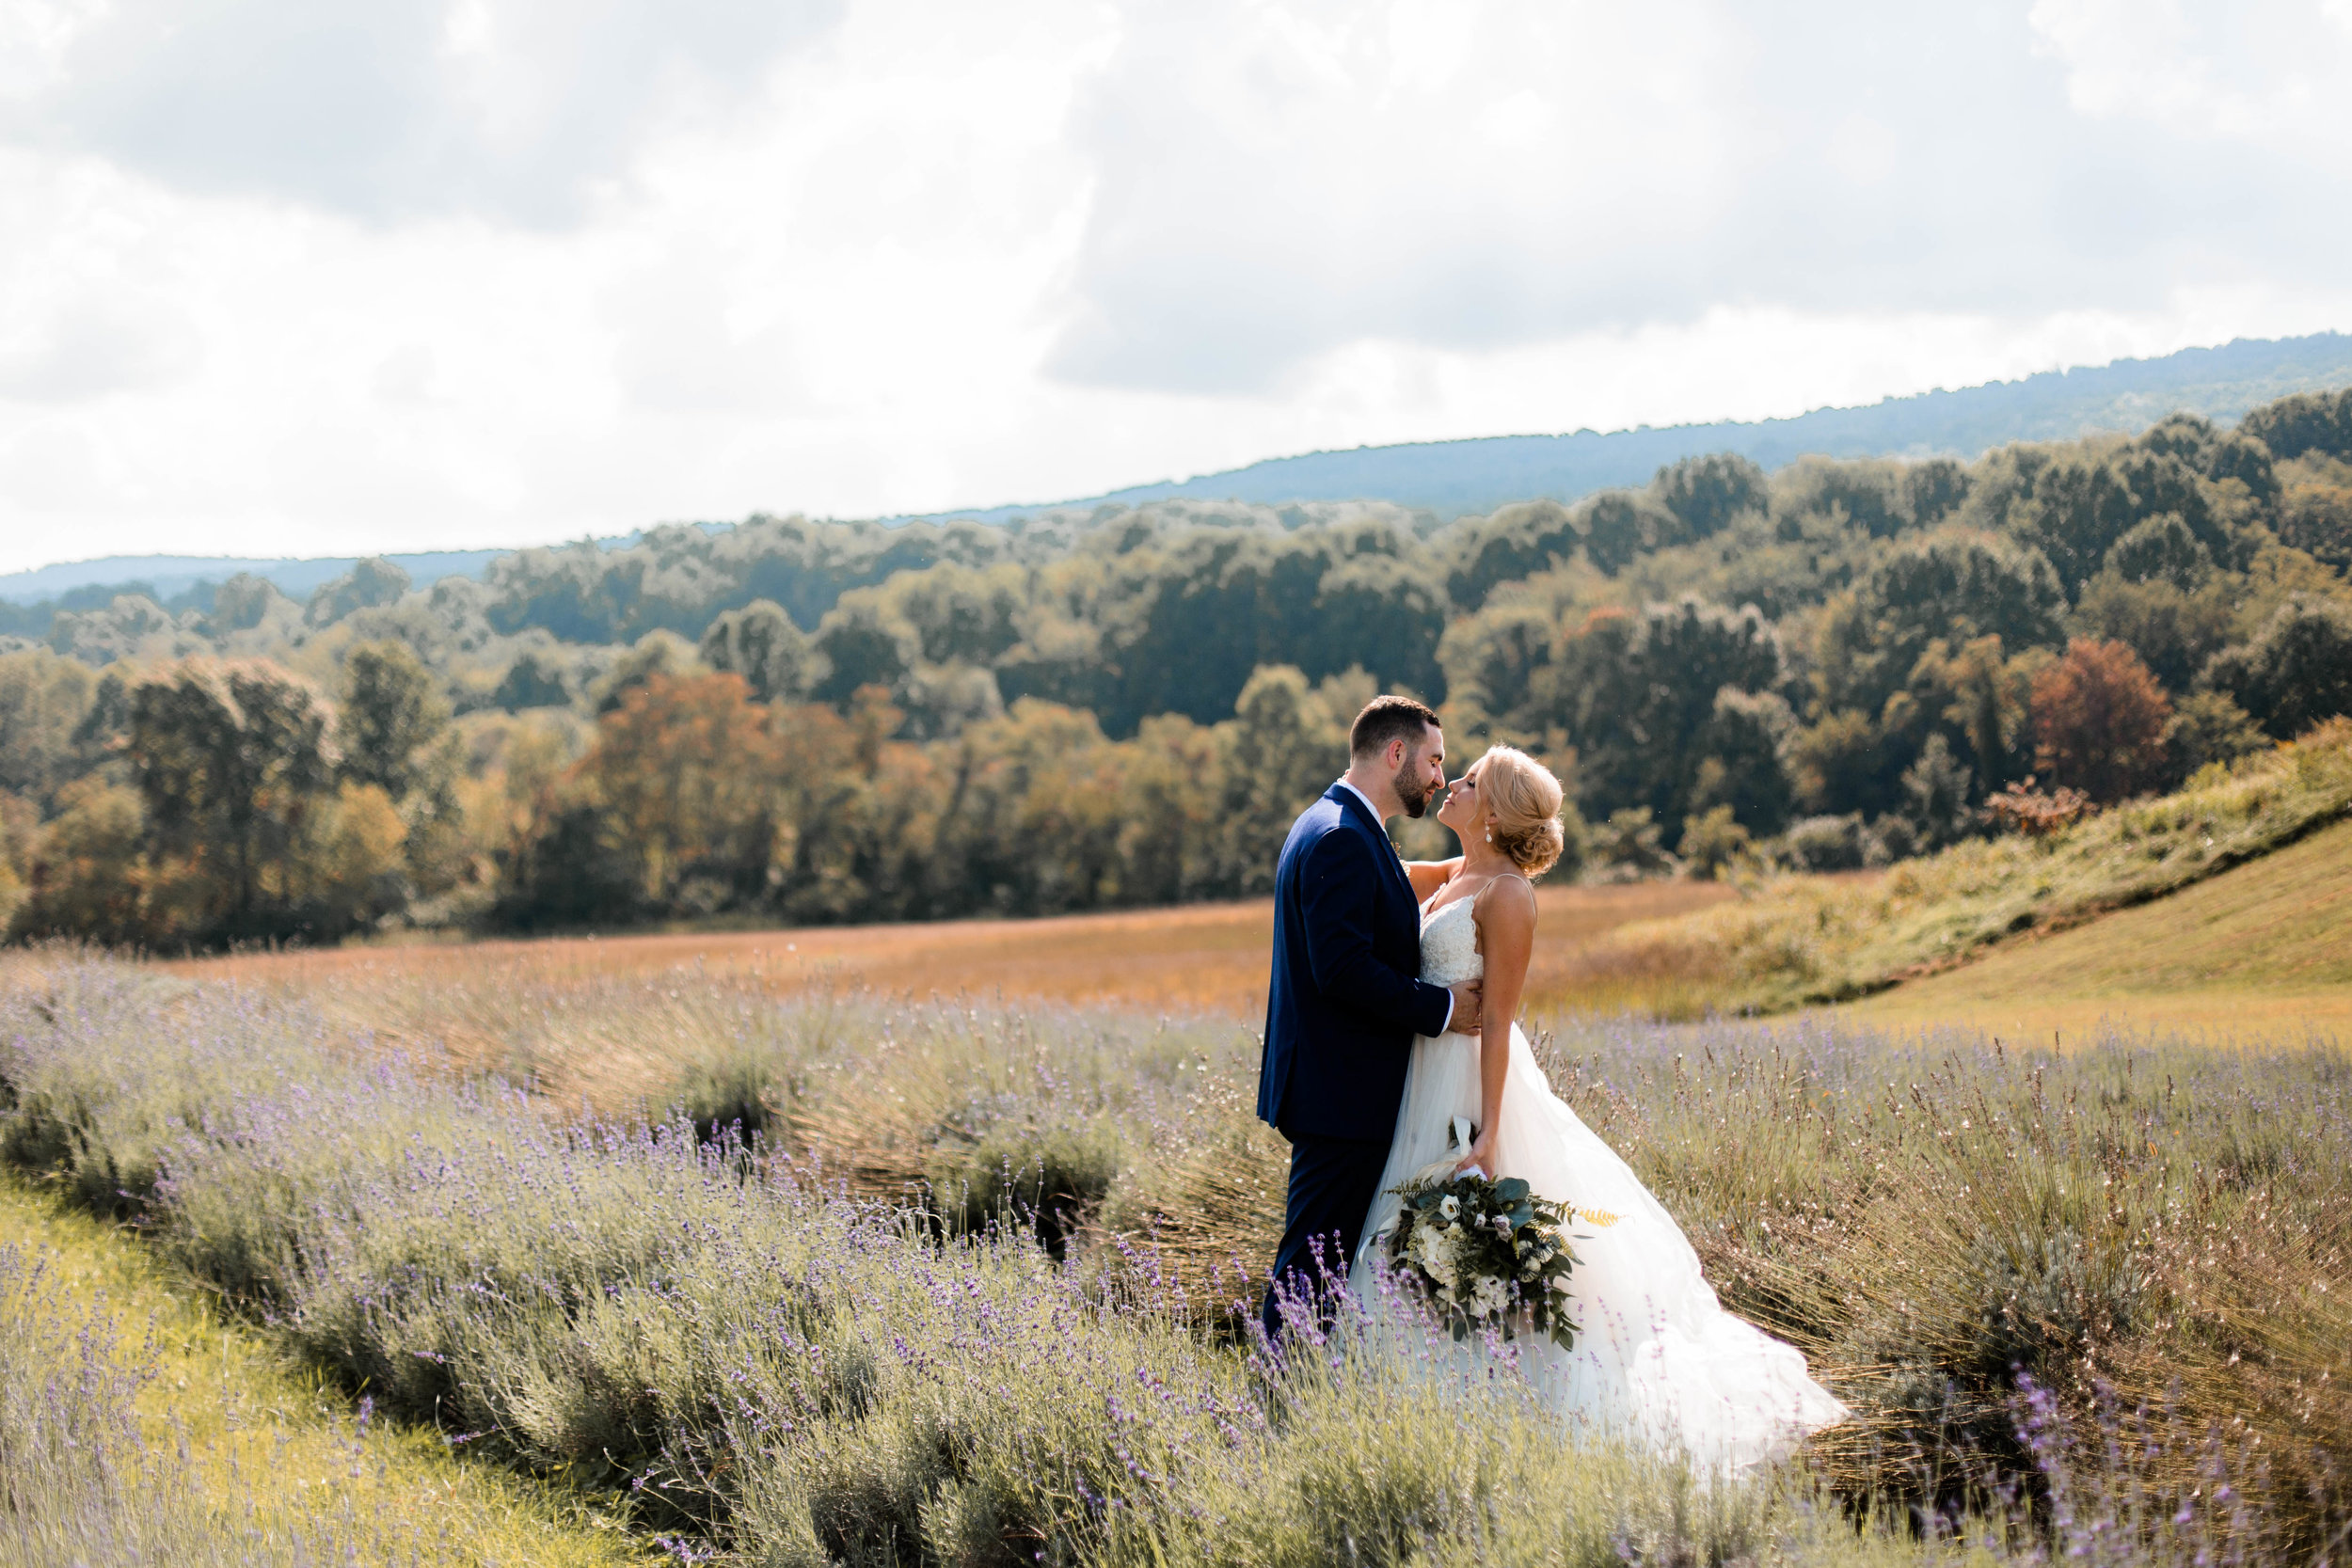 nicole-daacke-photography-intimate-wedding-in-a-lavender-field-washington-state-wedding-photographer-intimate-elopement-golden-lavender-field-wedding-photos-26.jpg